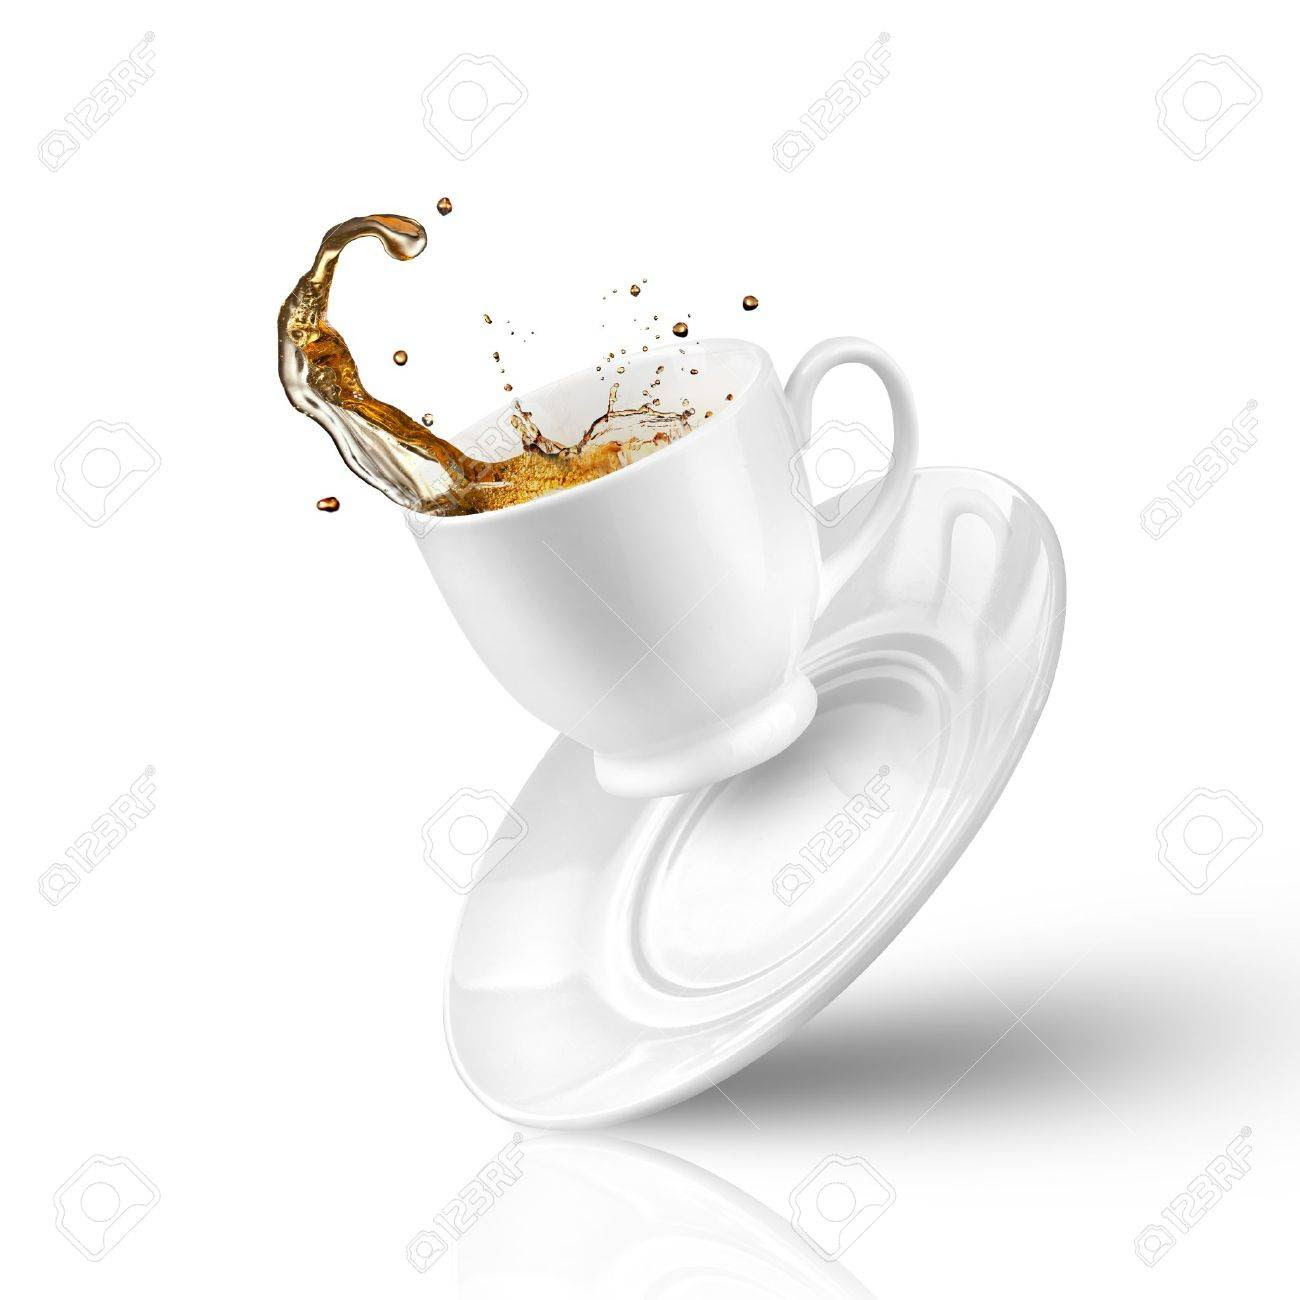 Image result for a cup of tea spills